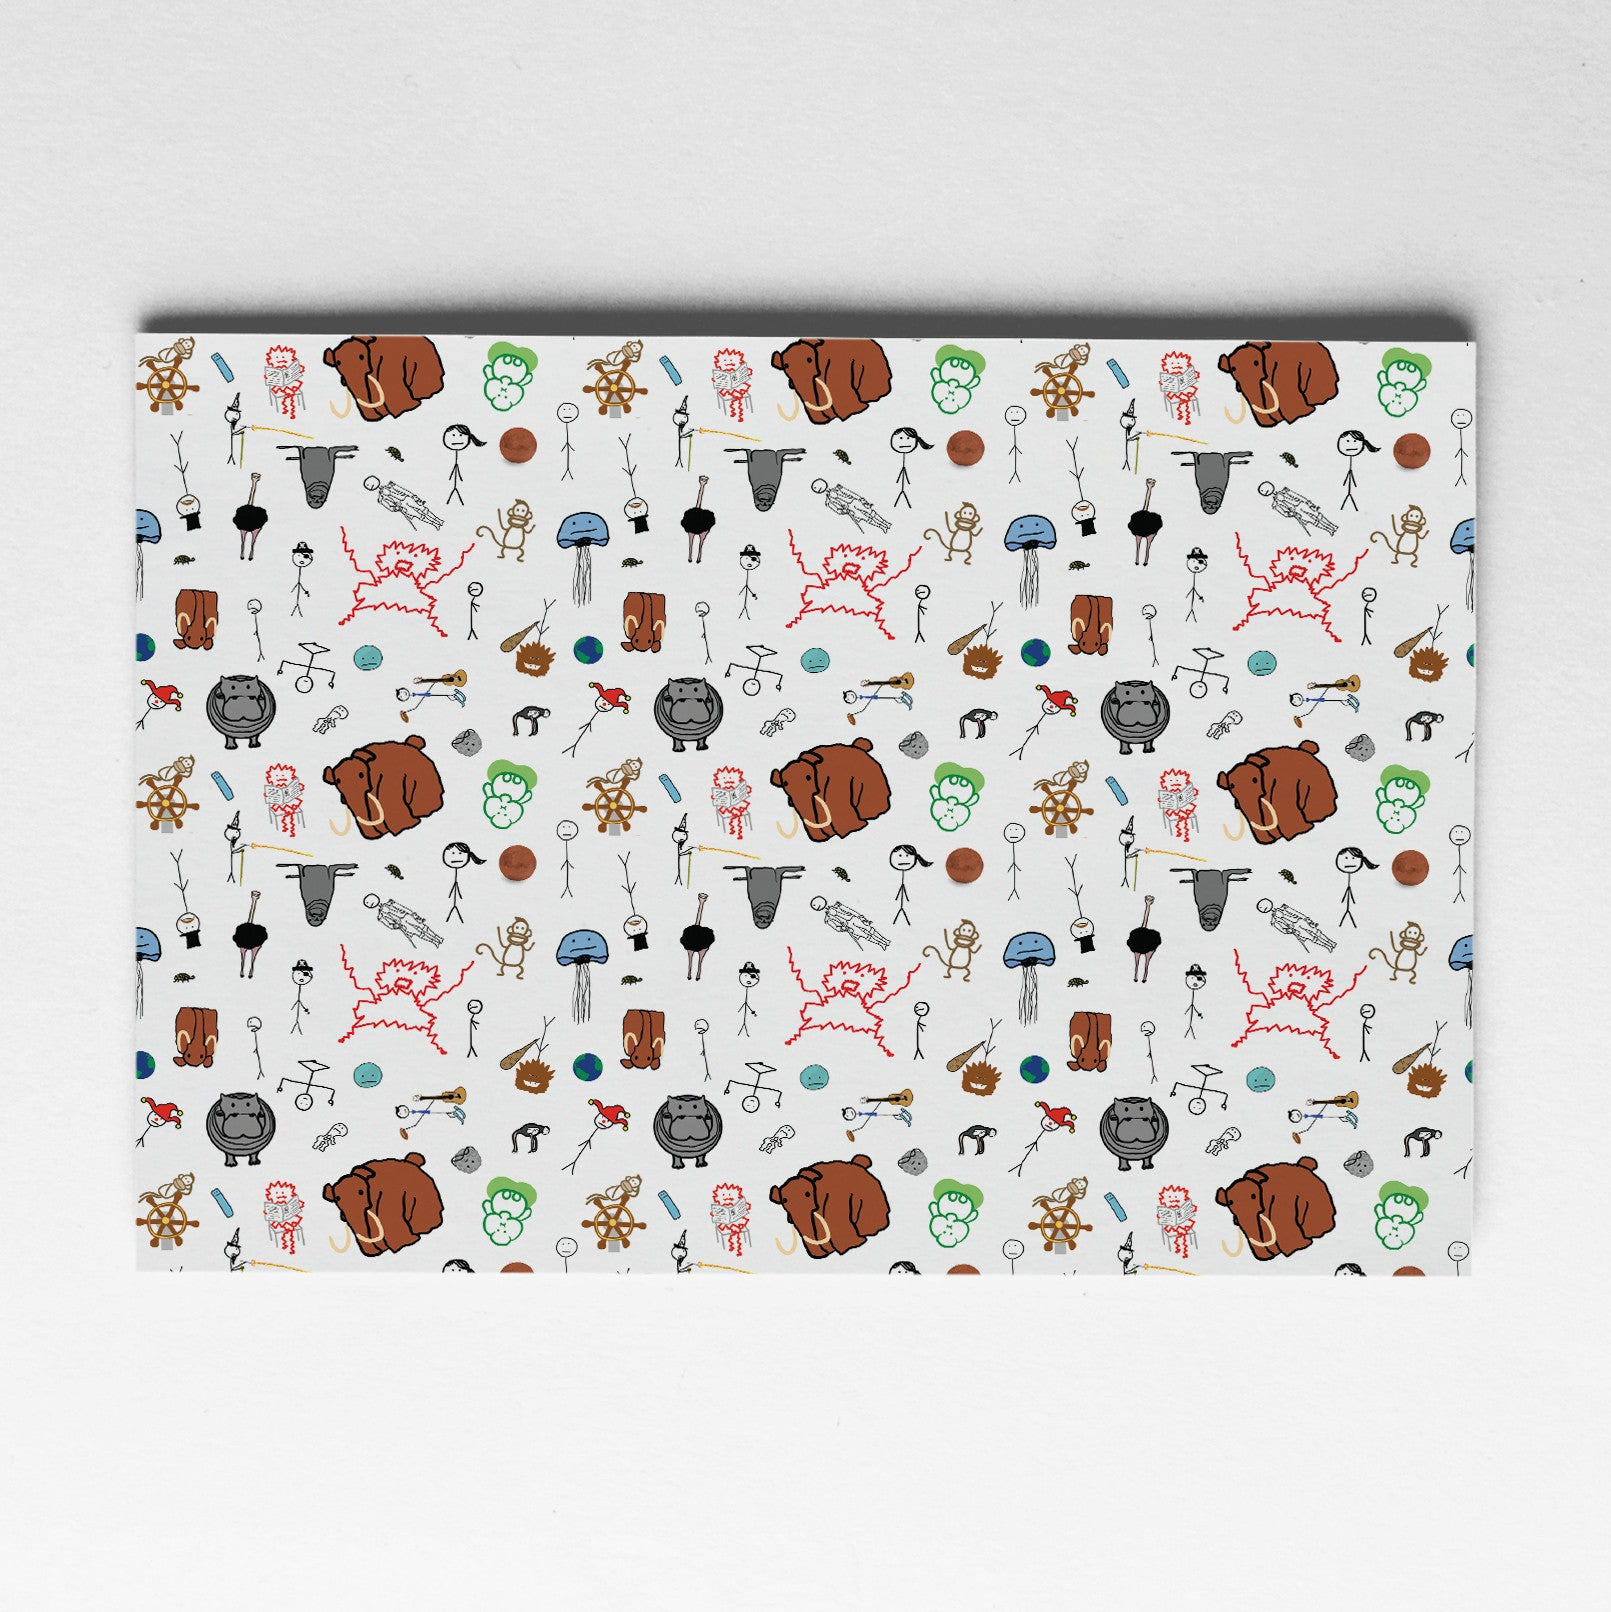 "Wrapping Paper Packs - WBW Characters (18"" x 24"" Sheets)"